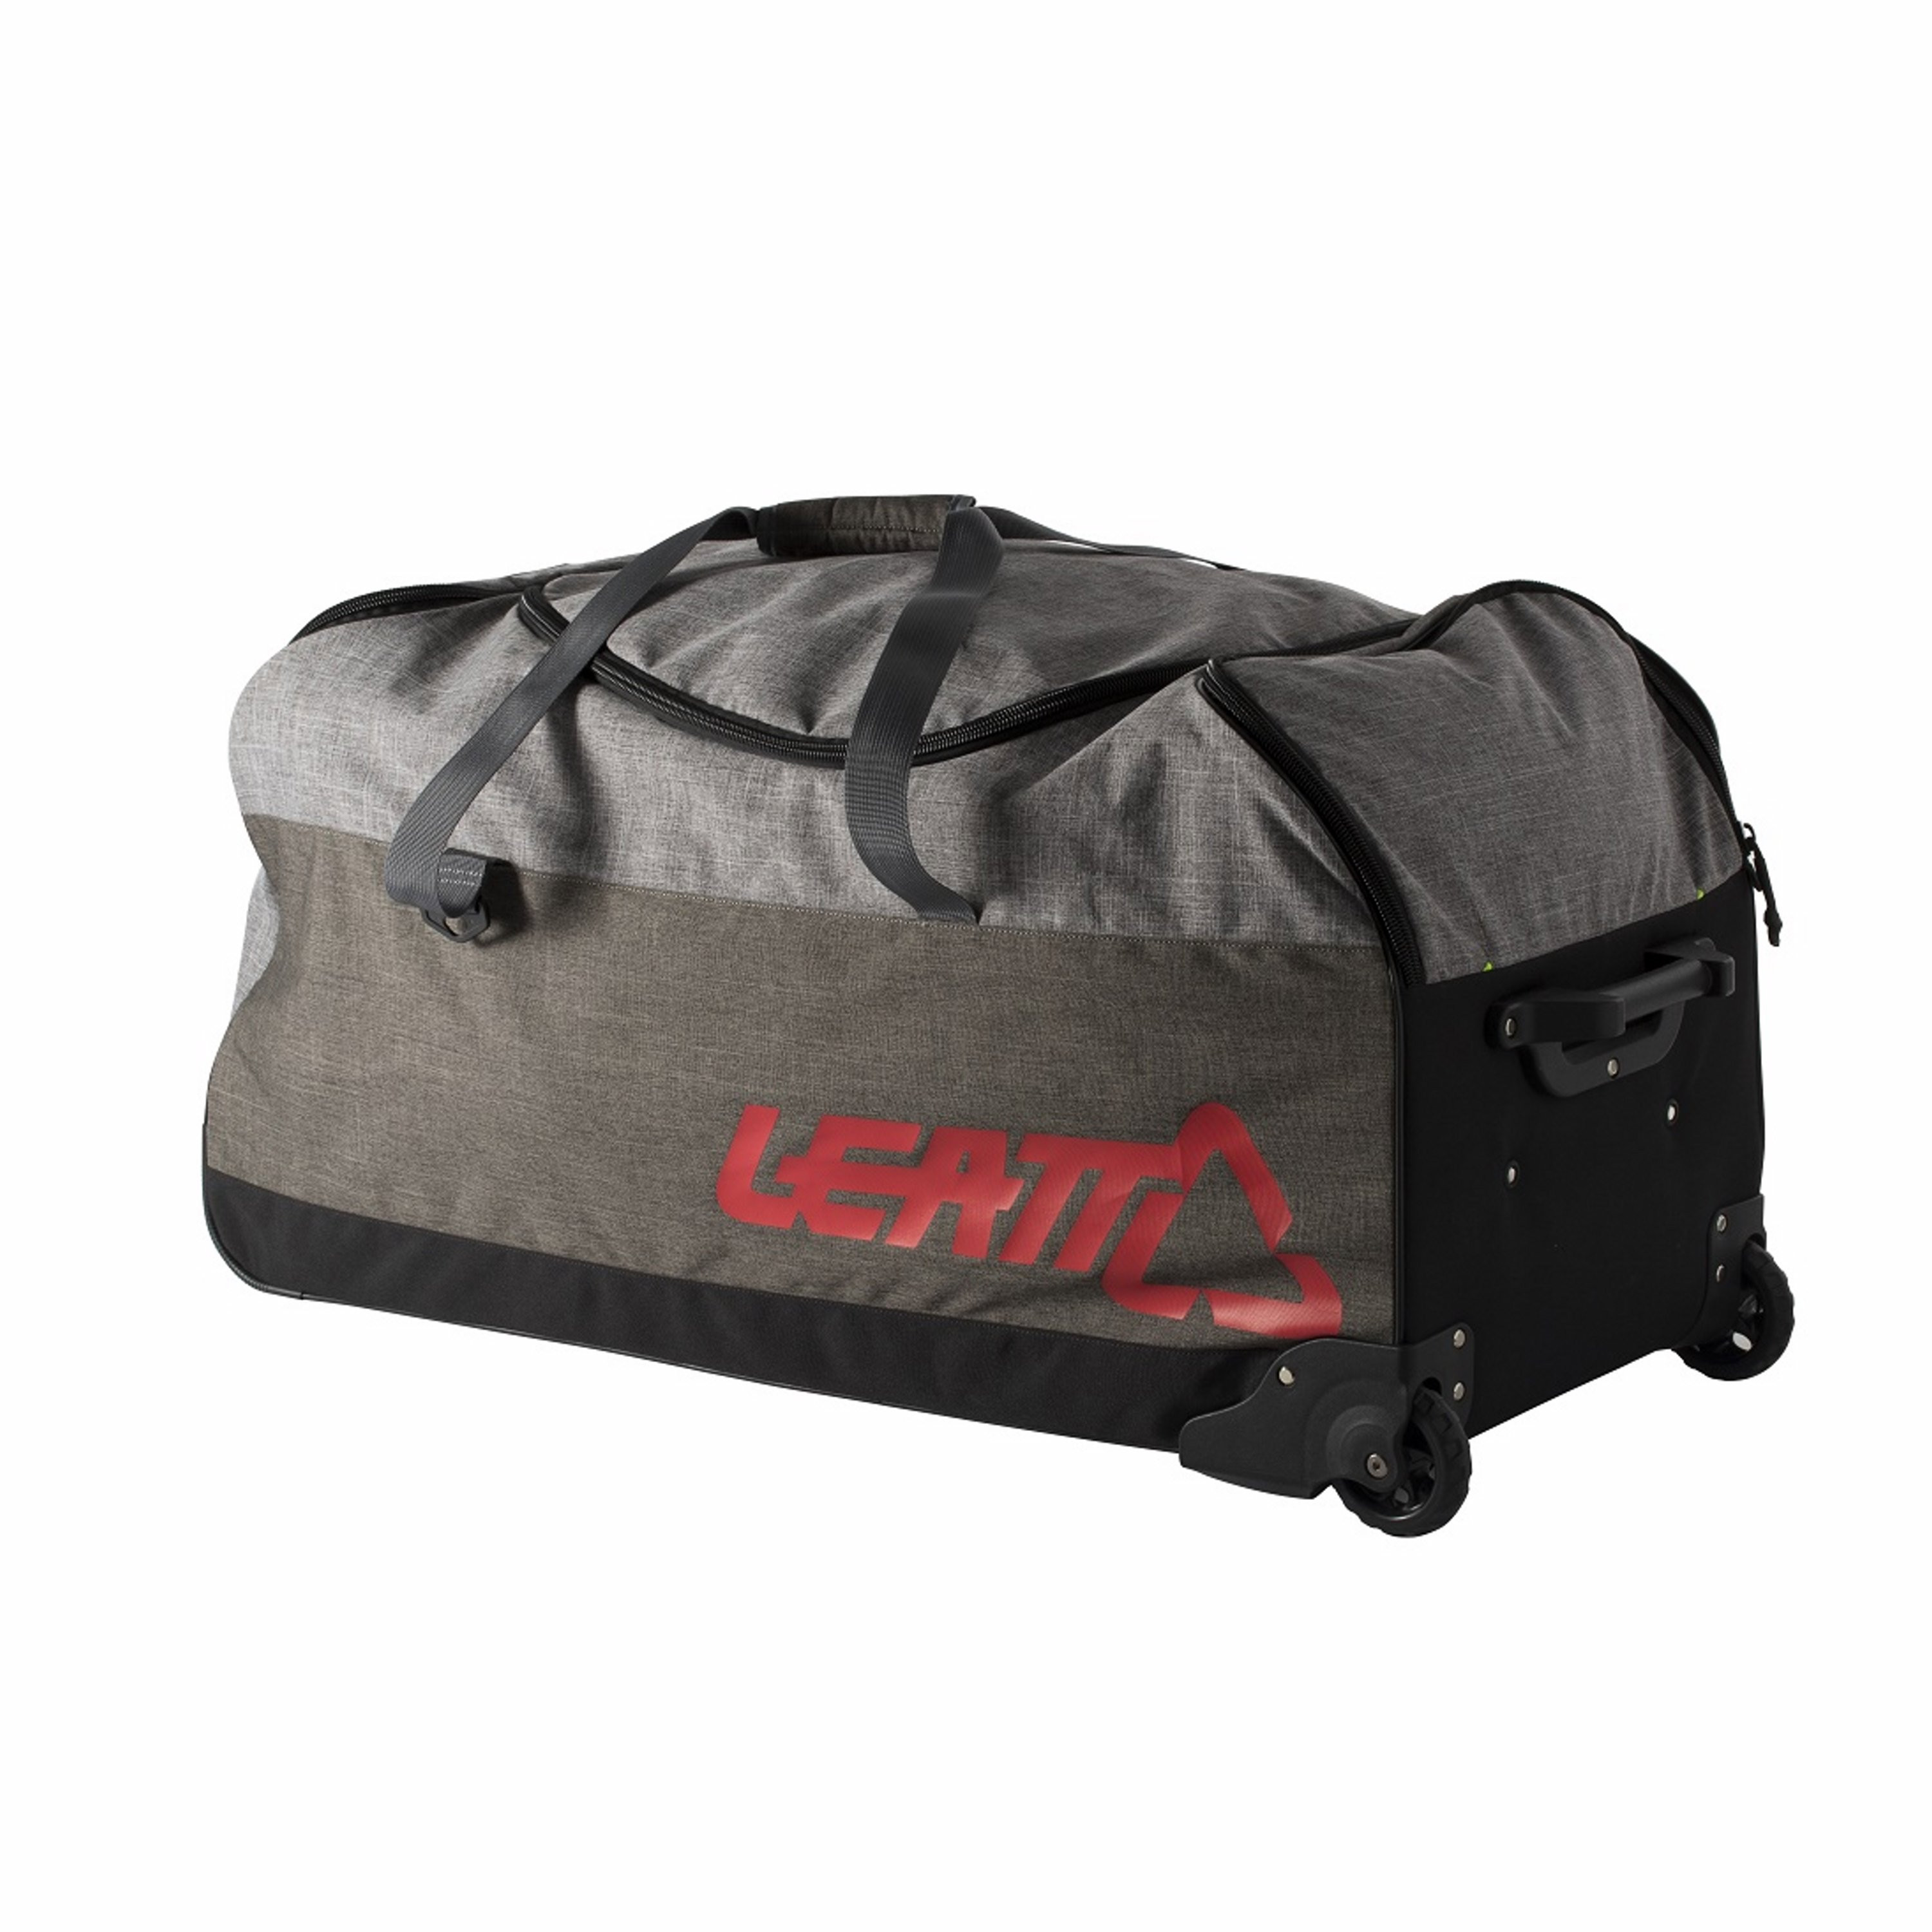 Leatt Gear Bag 8840 145 L Svart/Grå